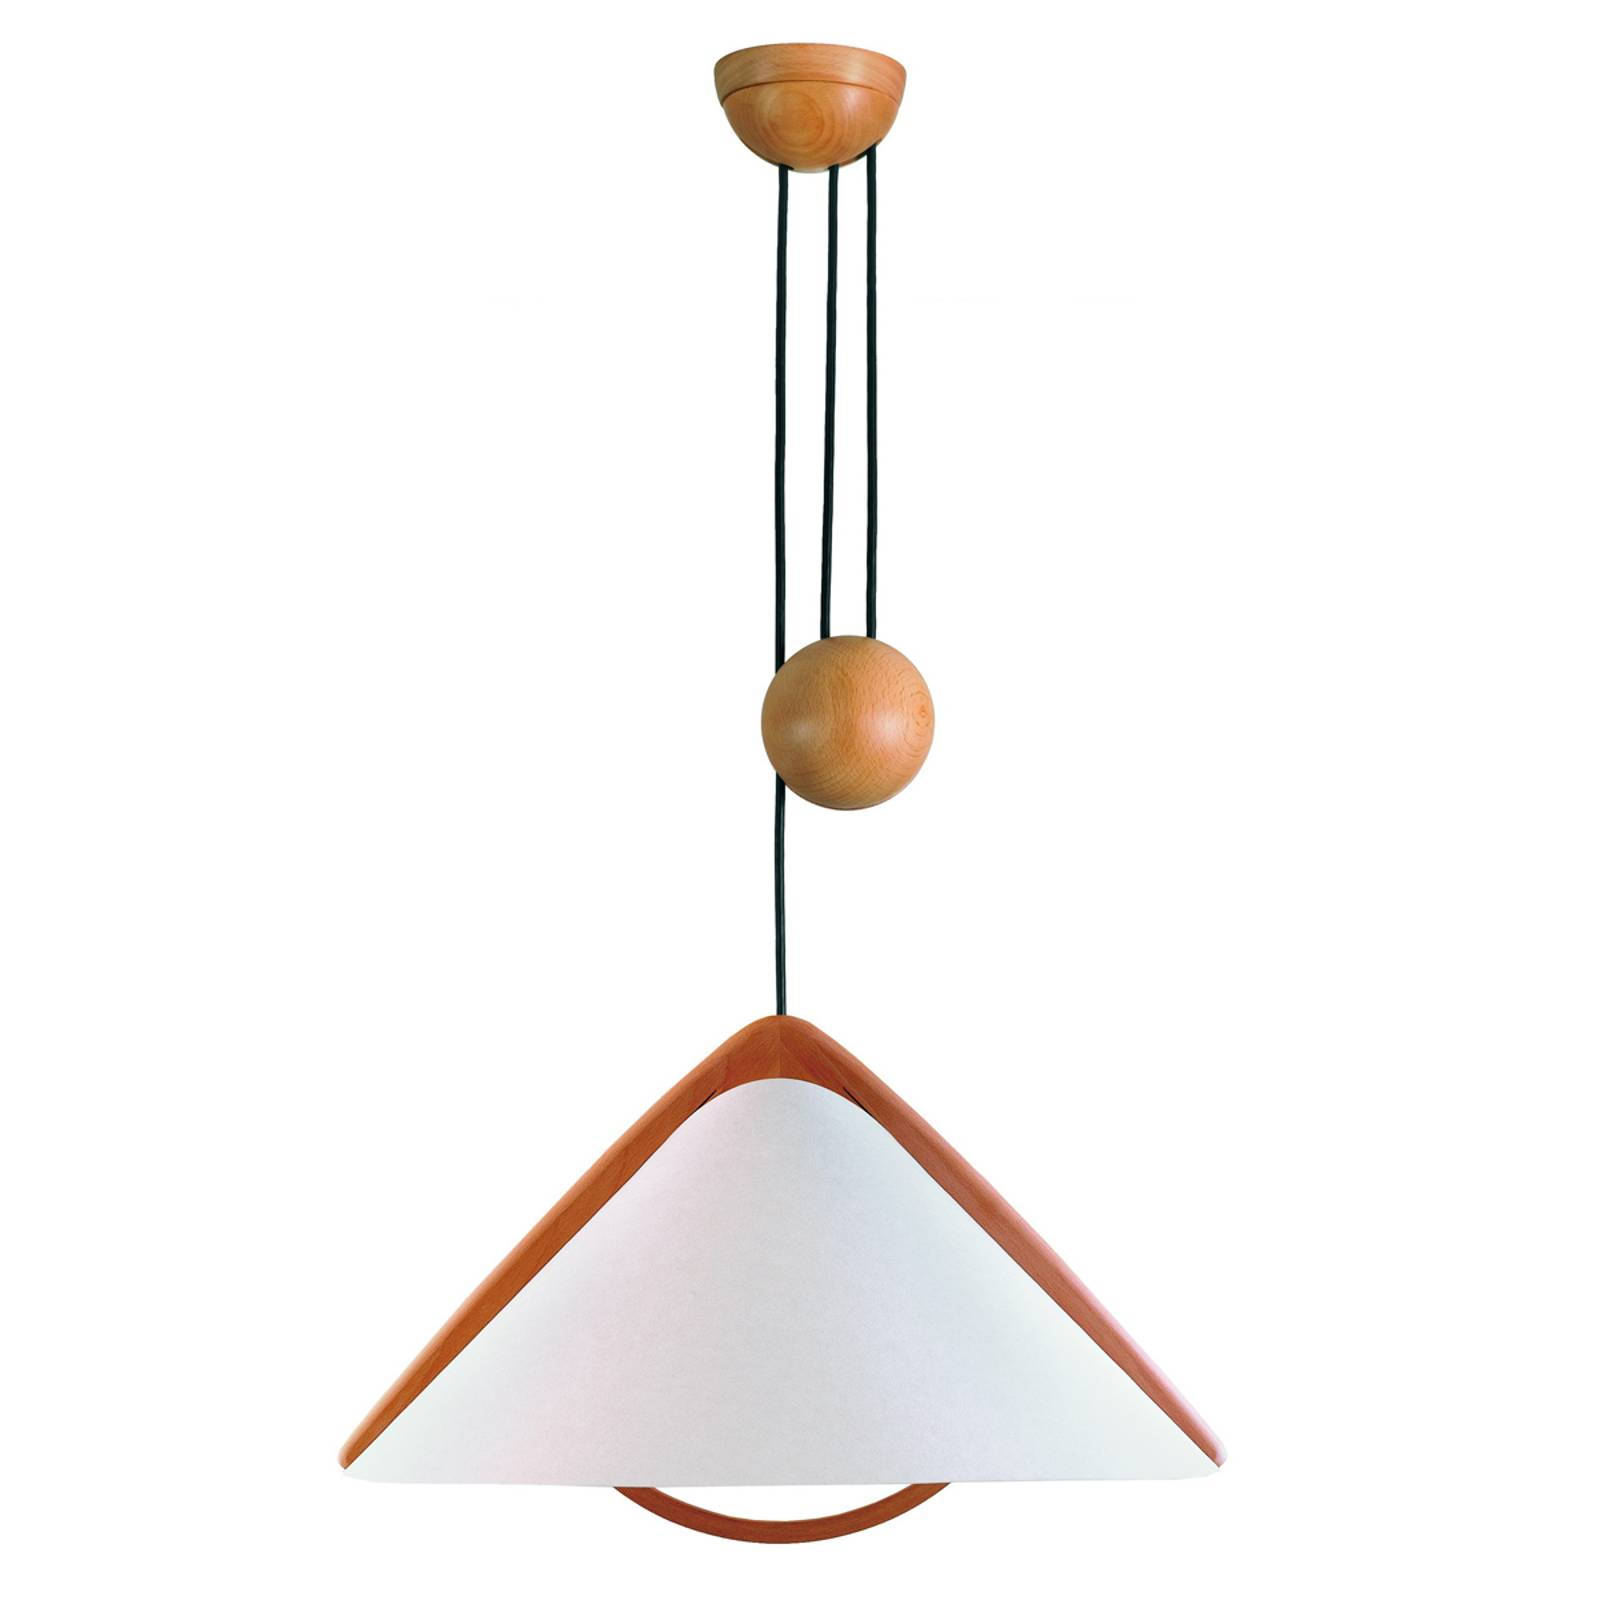 Rope pull light Pila with lunopal lampshade from Domus